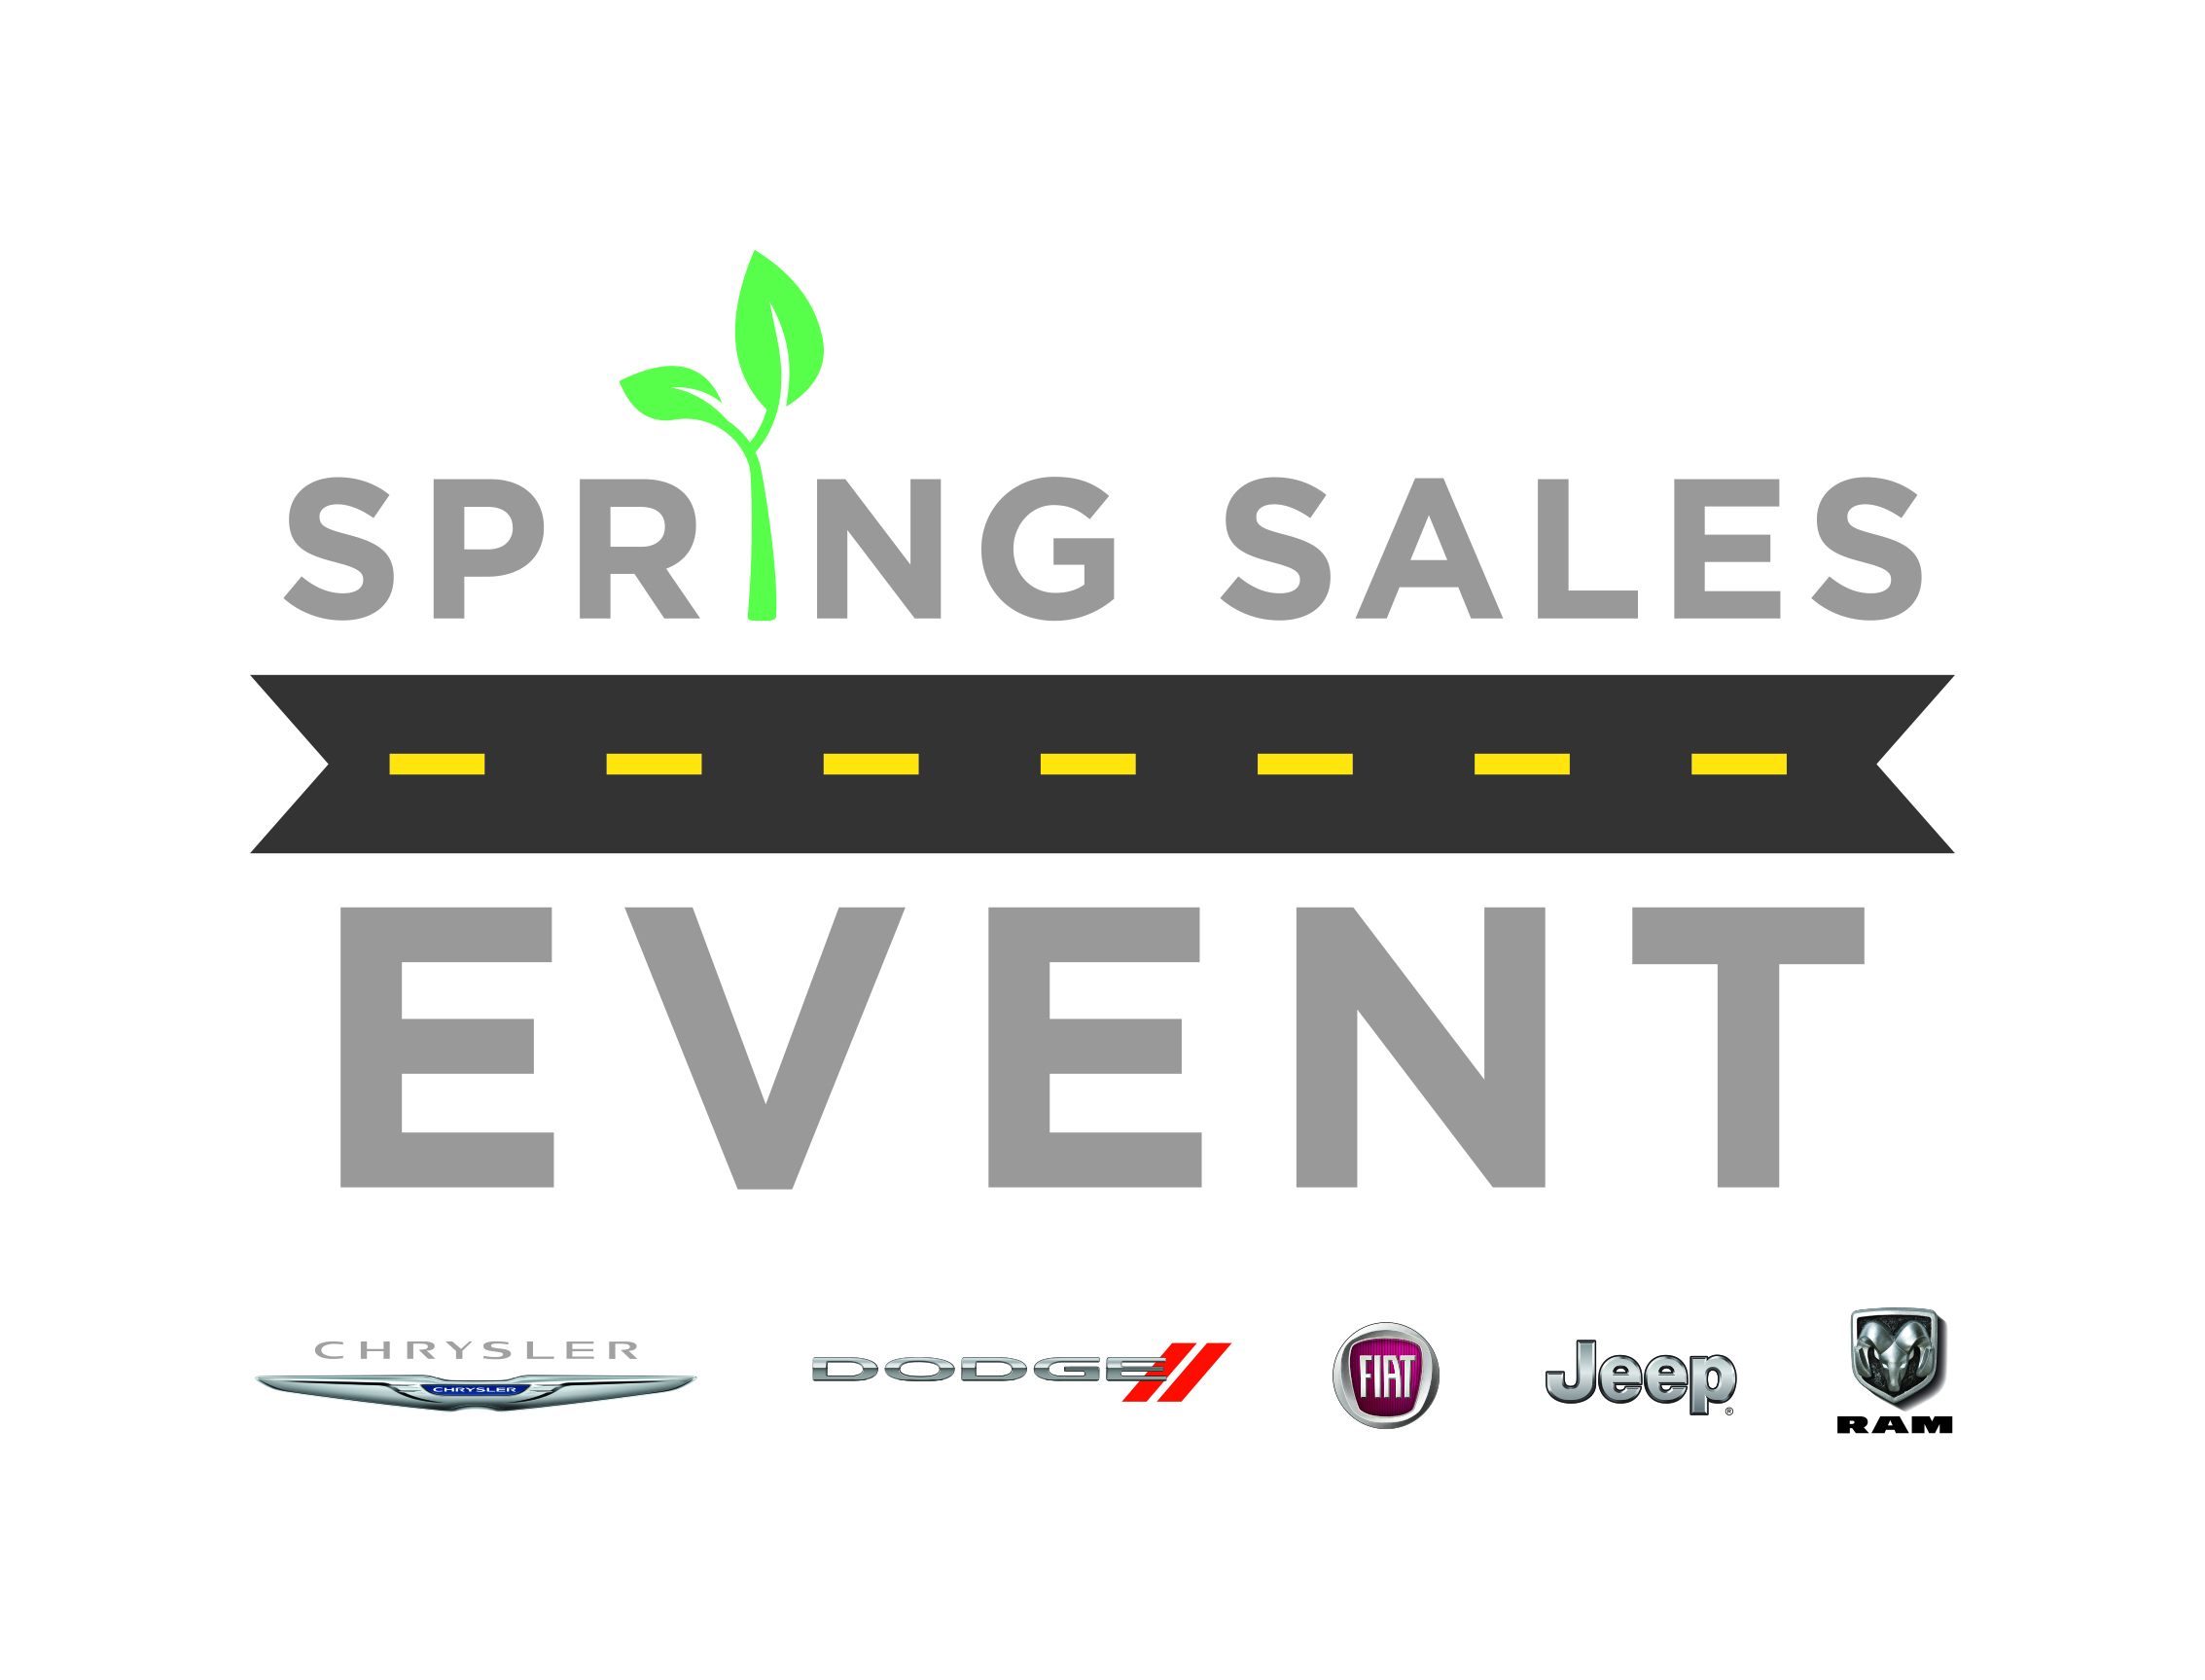 Spring Clearance Sales Event in Rockford, IL